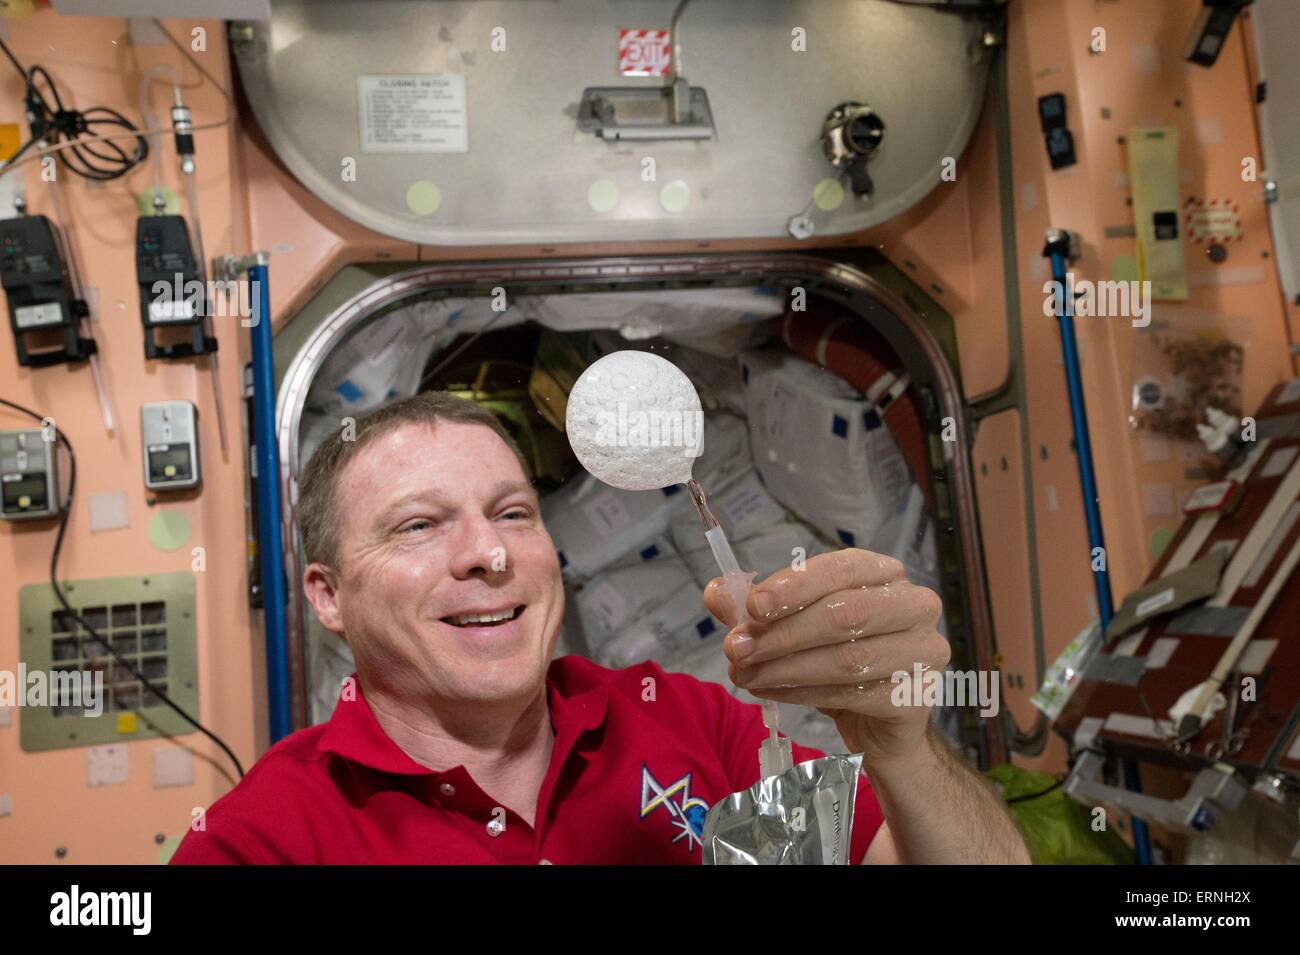 International Space Station Expedition 43 commander and NASA astronaut Terry Virts creates a sphere of bubbles in - Stock Image